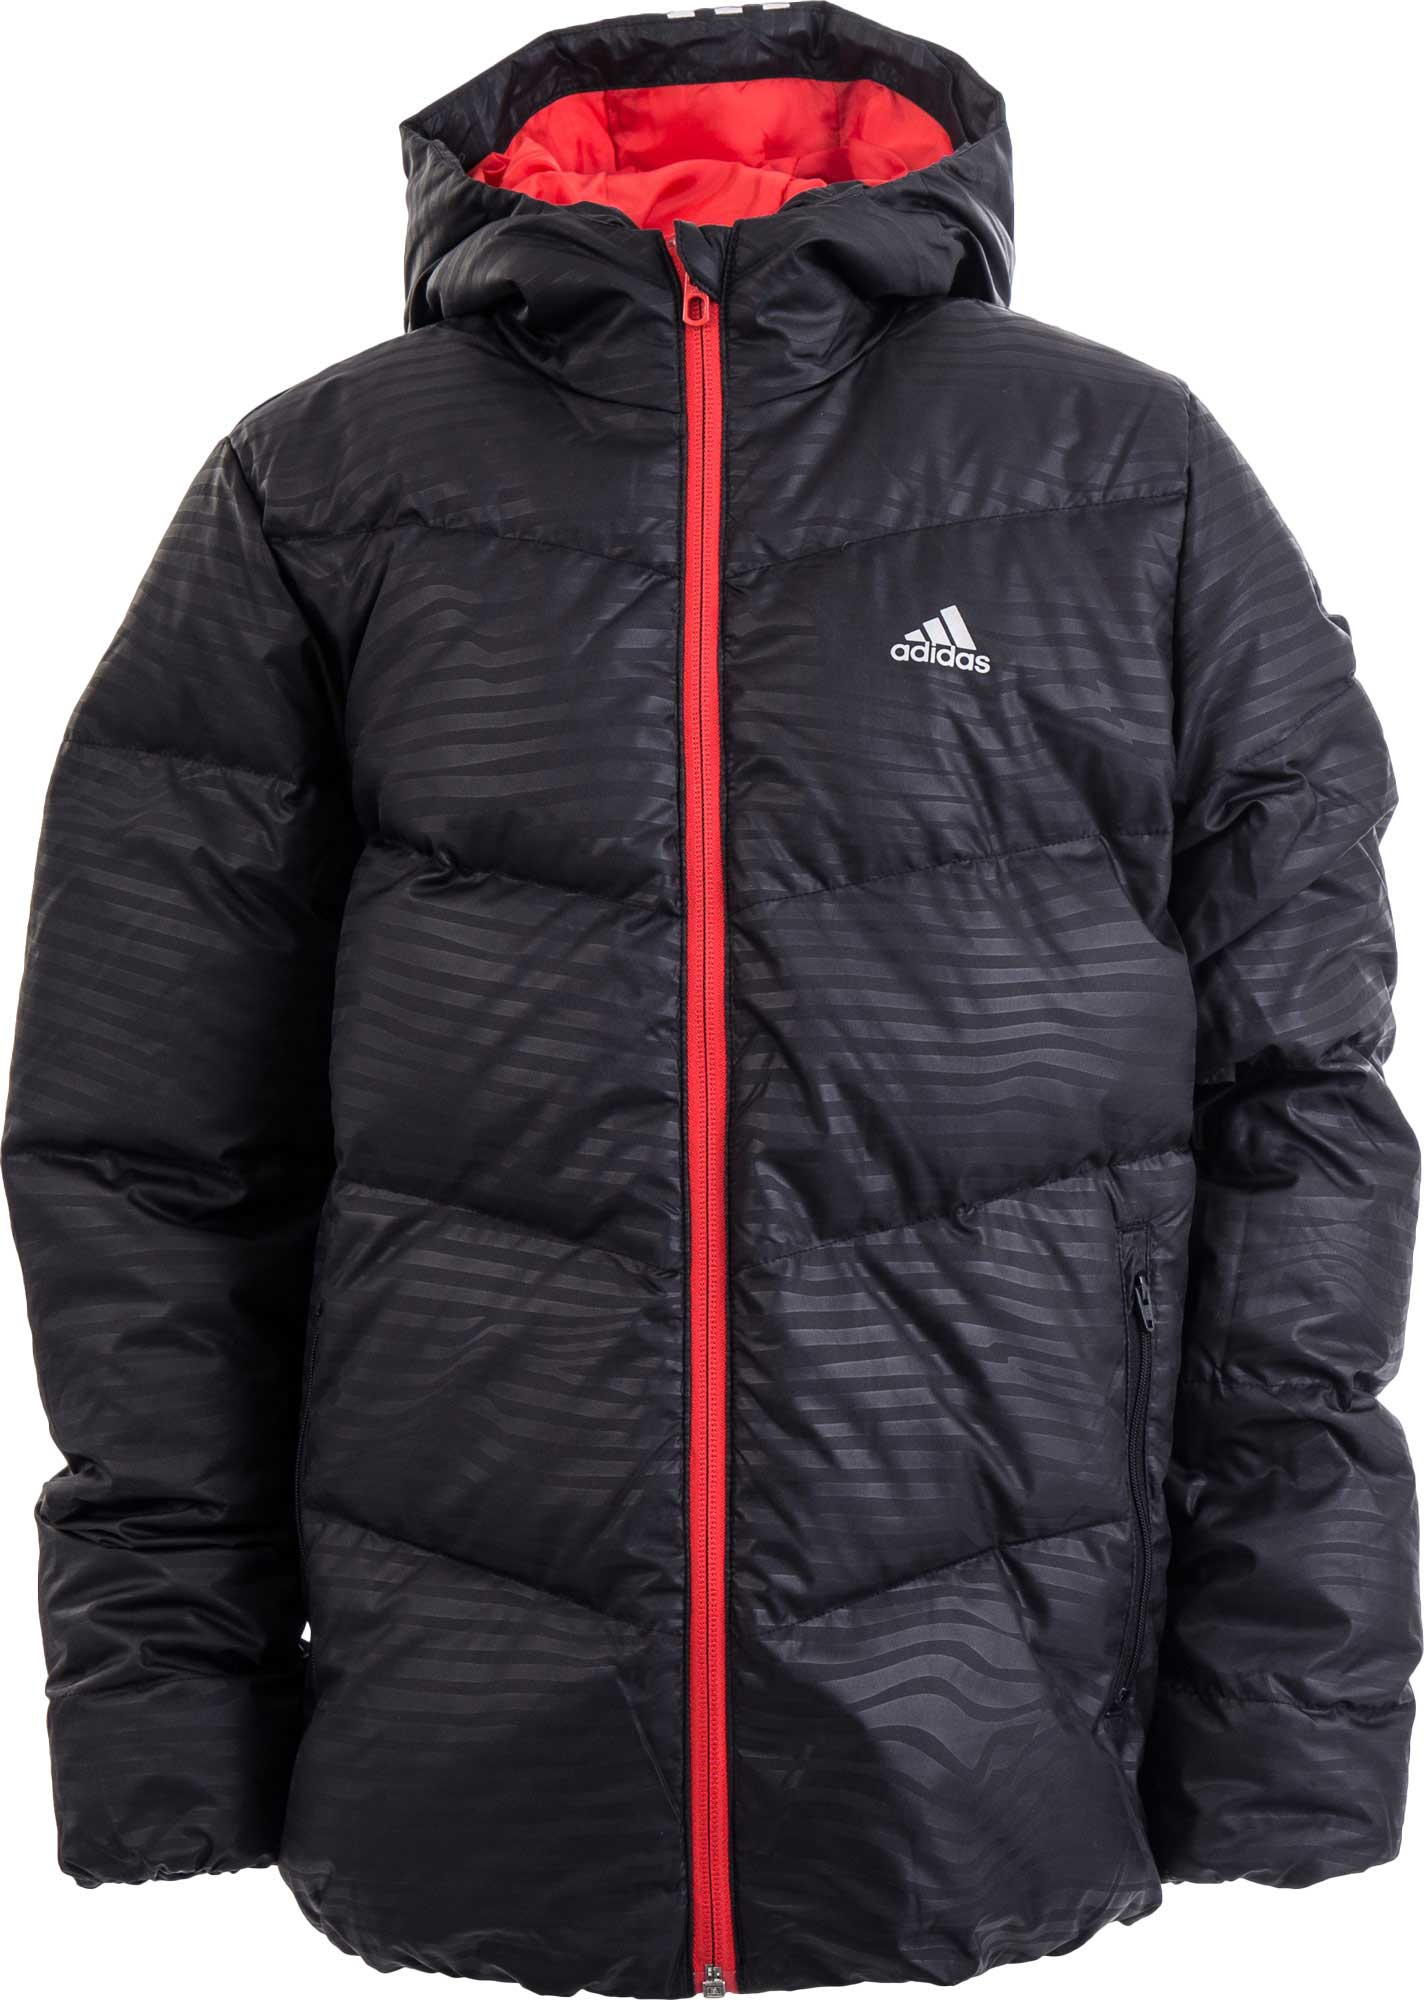 3b38fde42 adidas BOYS DOWN JACKET | sportisimo.com